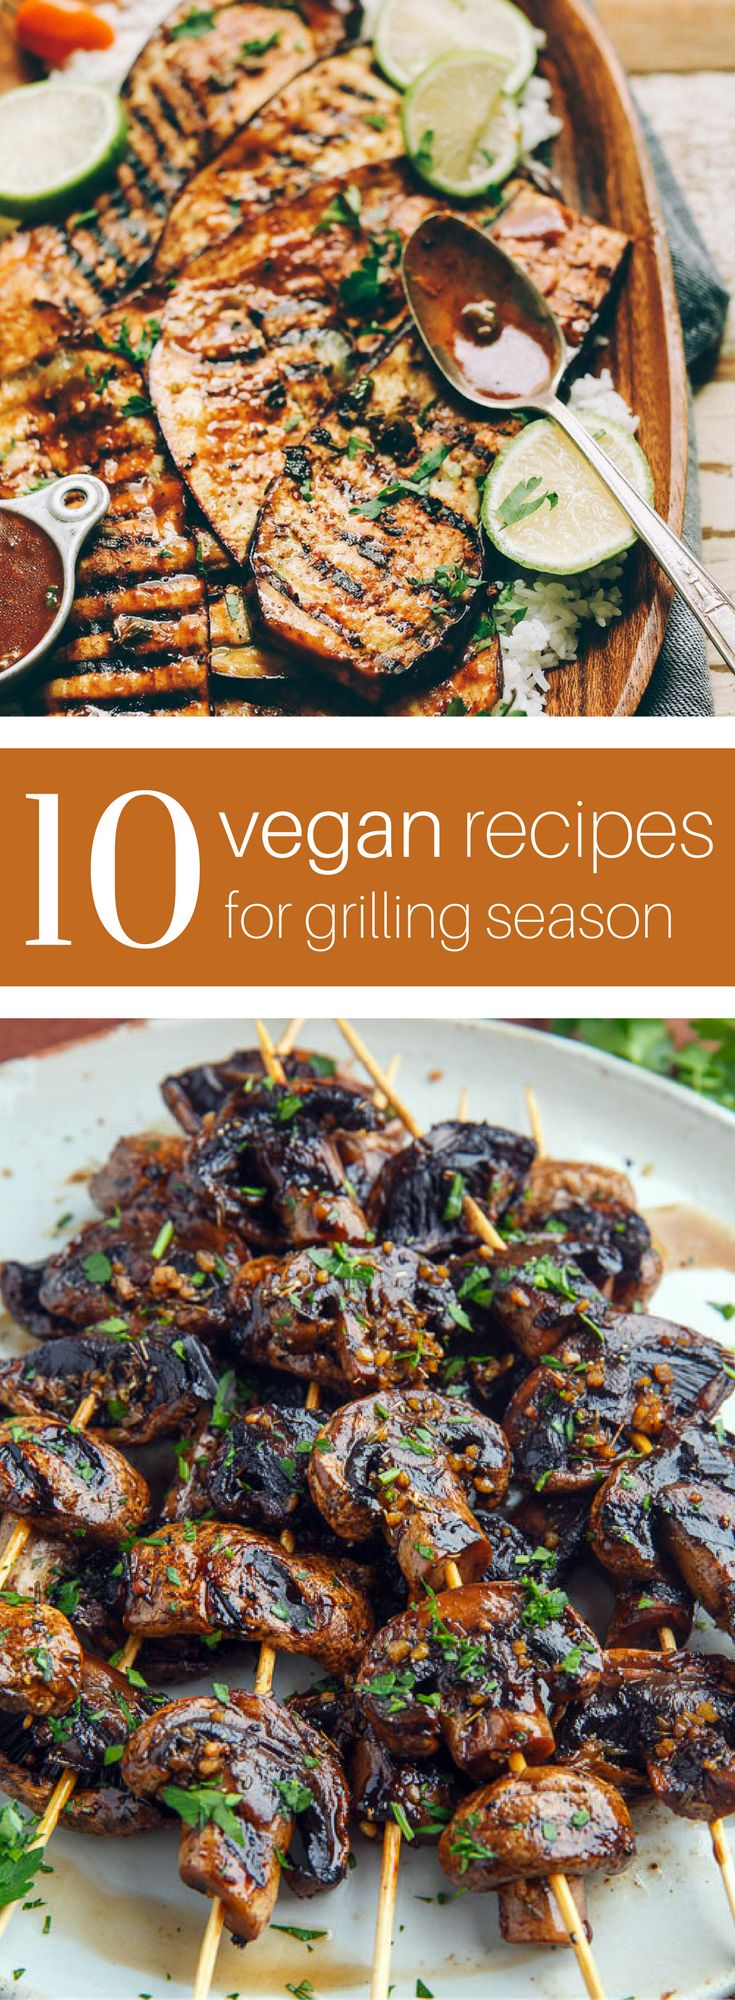 Vegans, rejoice! These 10 vegan recipes for the grill pack all the smoky flavor you crave—minus the meat. Get the recipes at spryliving.com